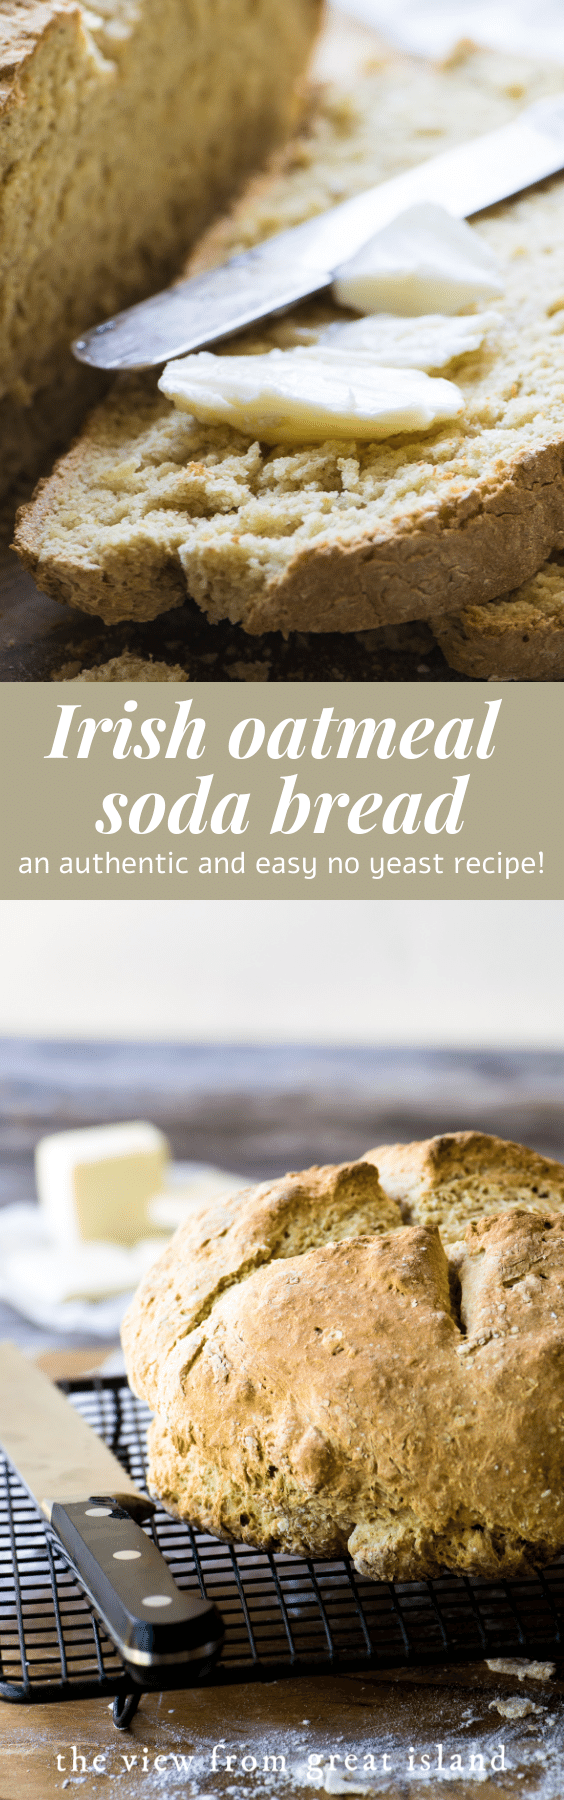 irish oatmeal soda bread pin